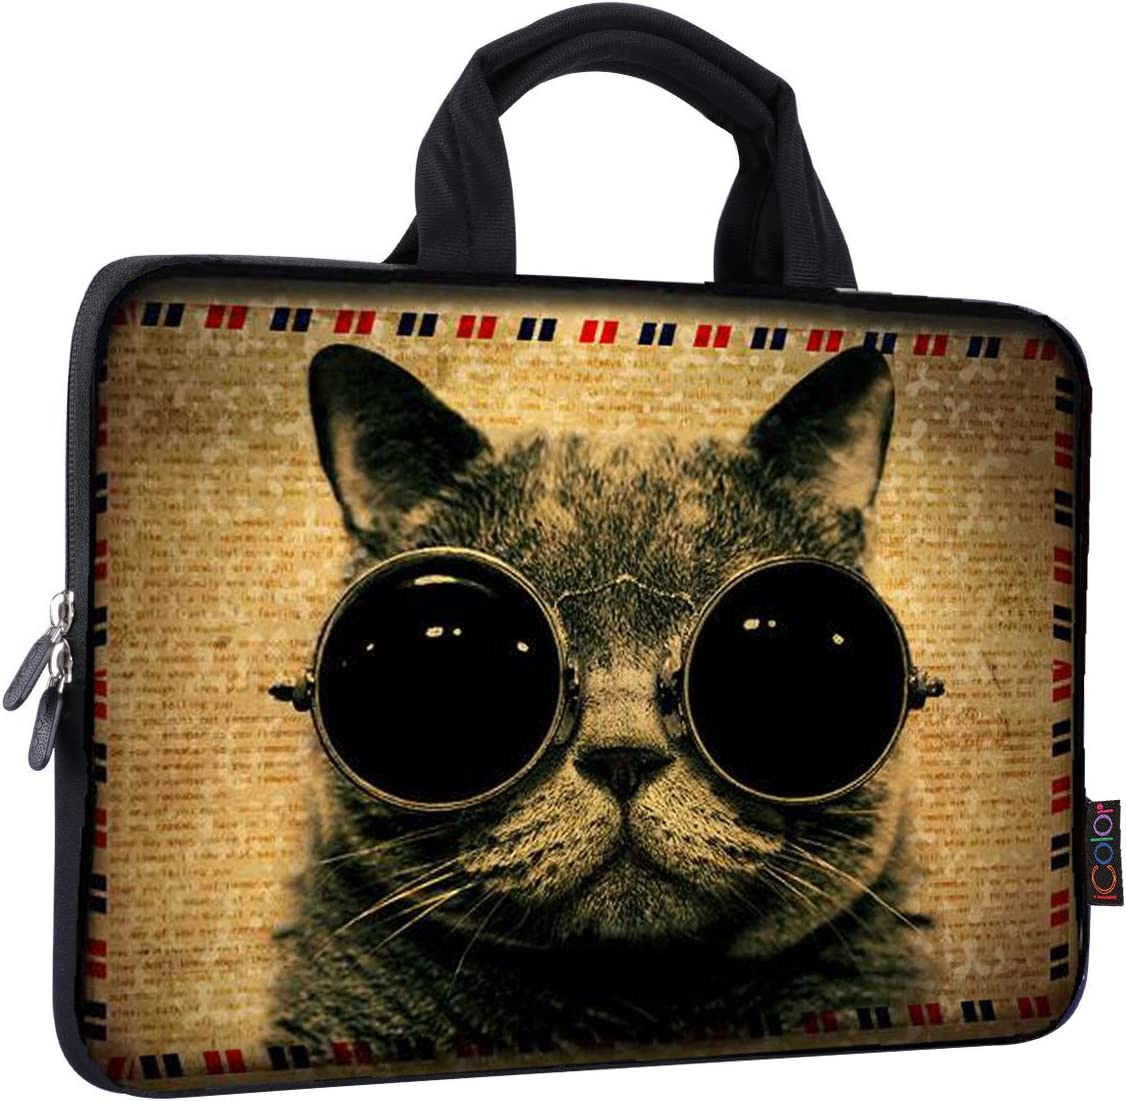 iColor 14 15 15.4 15.6 inch Laptop Handle Bag Computer Protect Case Pouch Holder Notebook Sleeve Neoprene Cover Soft Carring Travel Case Laptop Sleeve Cat ICB-07